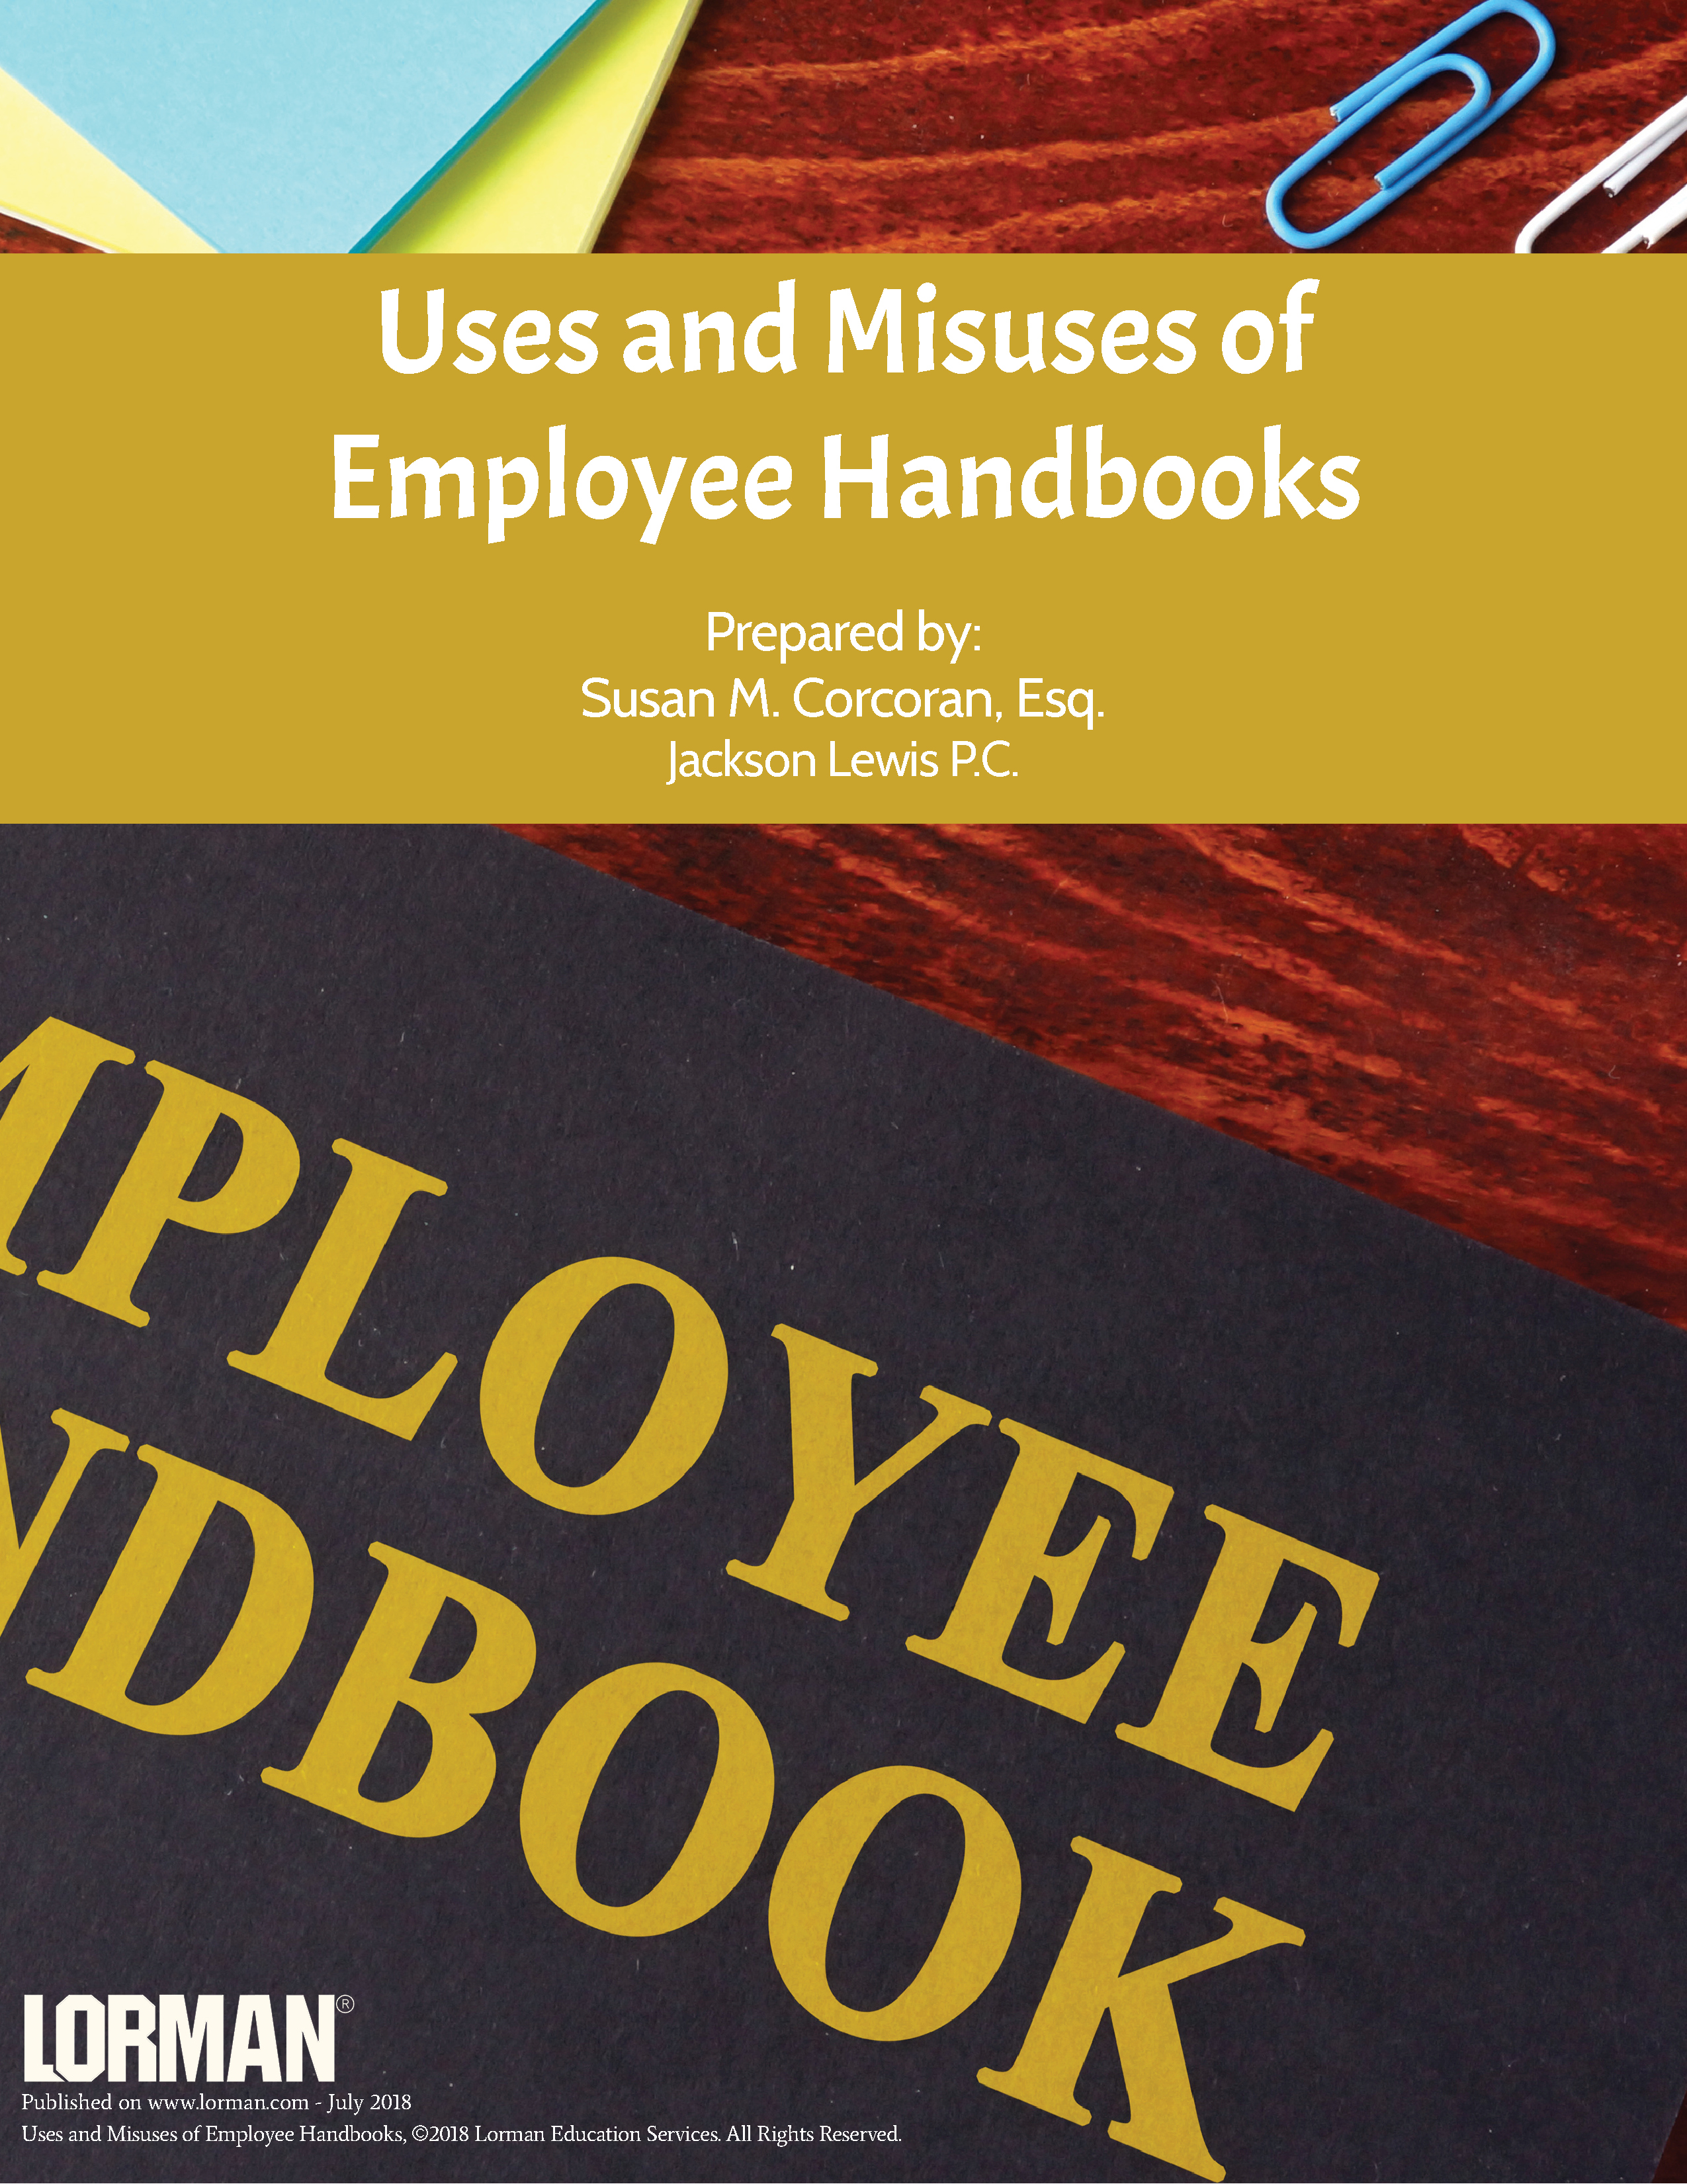 Uses and Misuses of Employee Handbooks